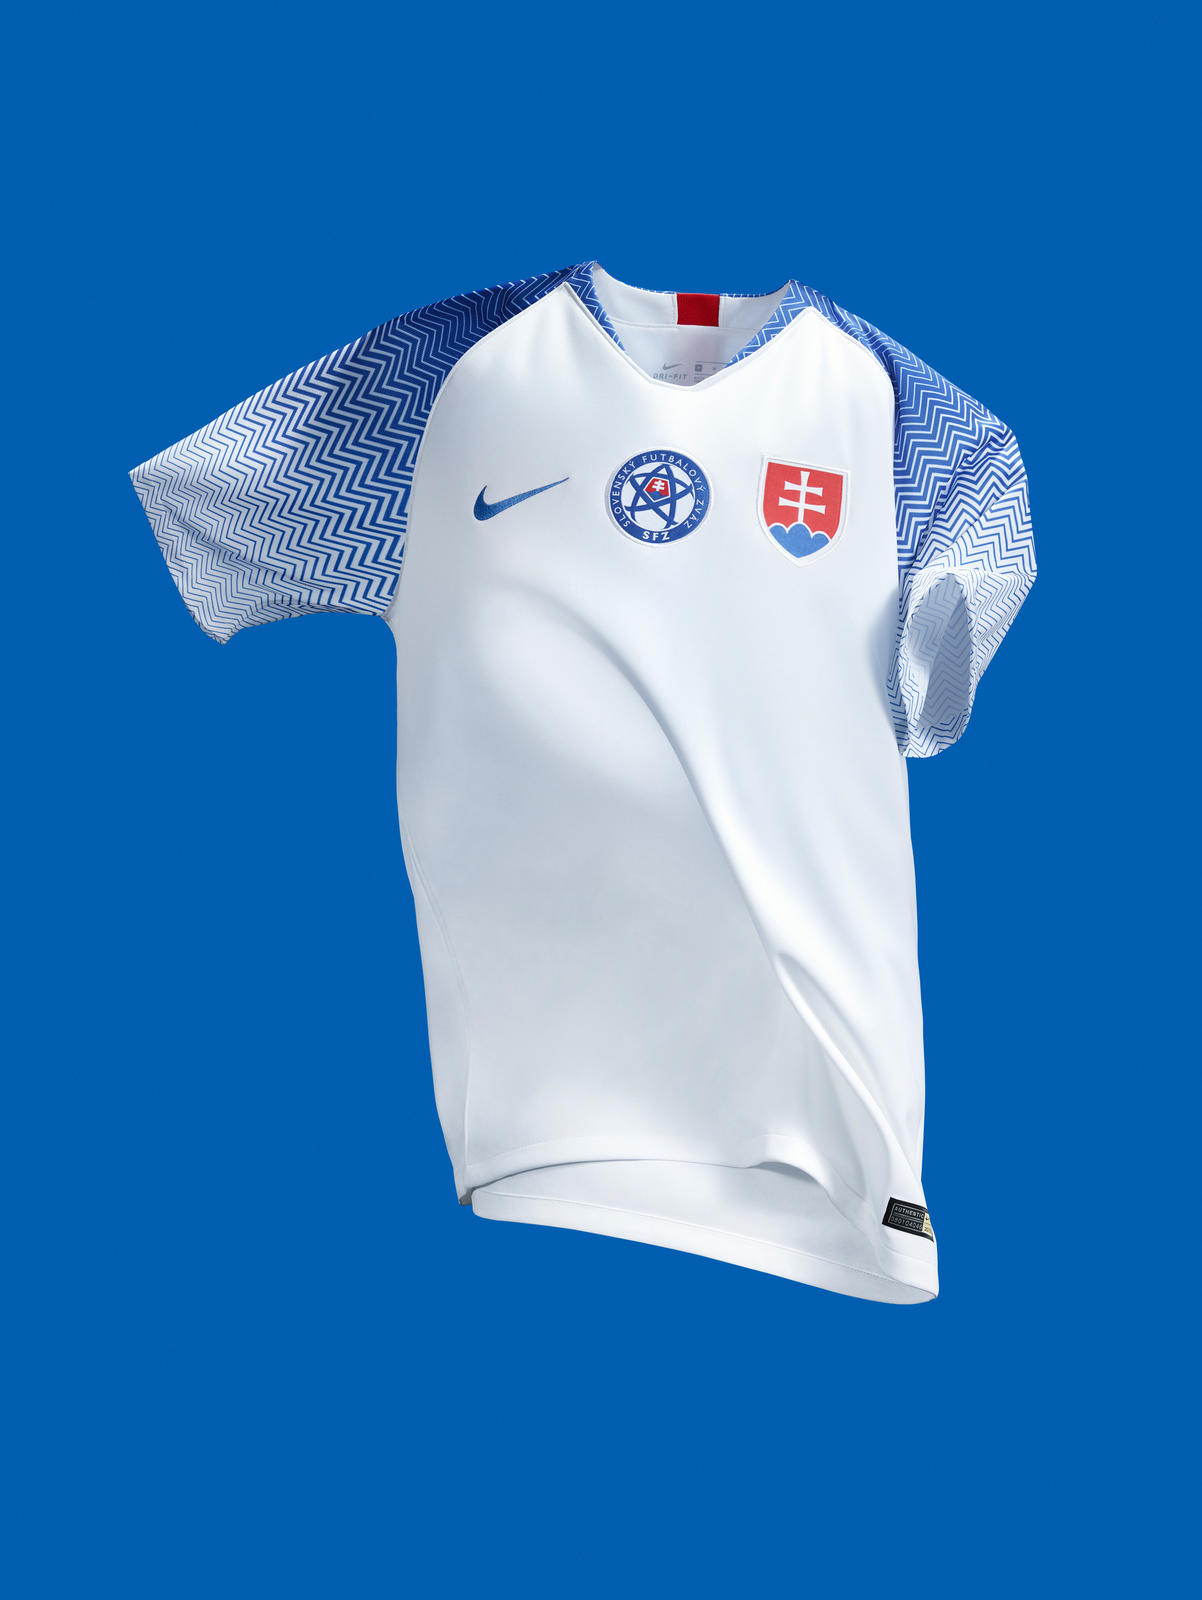 Slovakia Honors Nation's Historic Architecture with New Kit Design 0